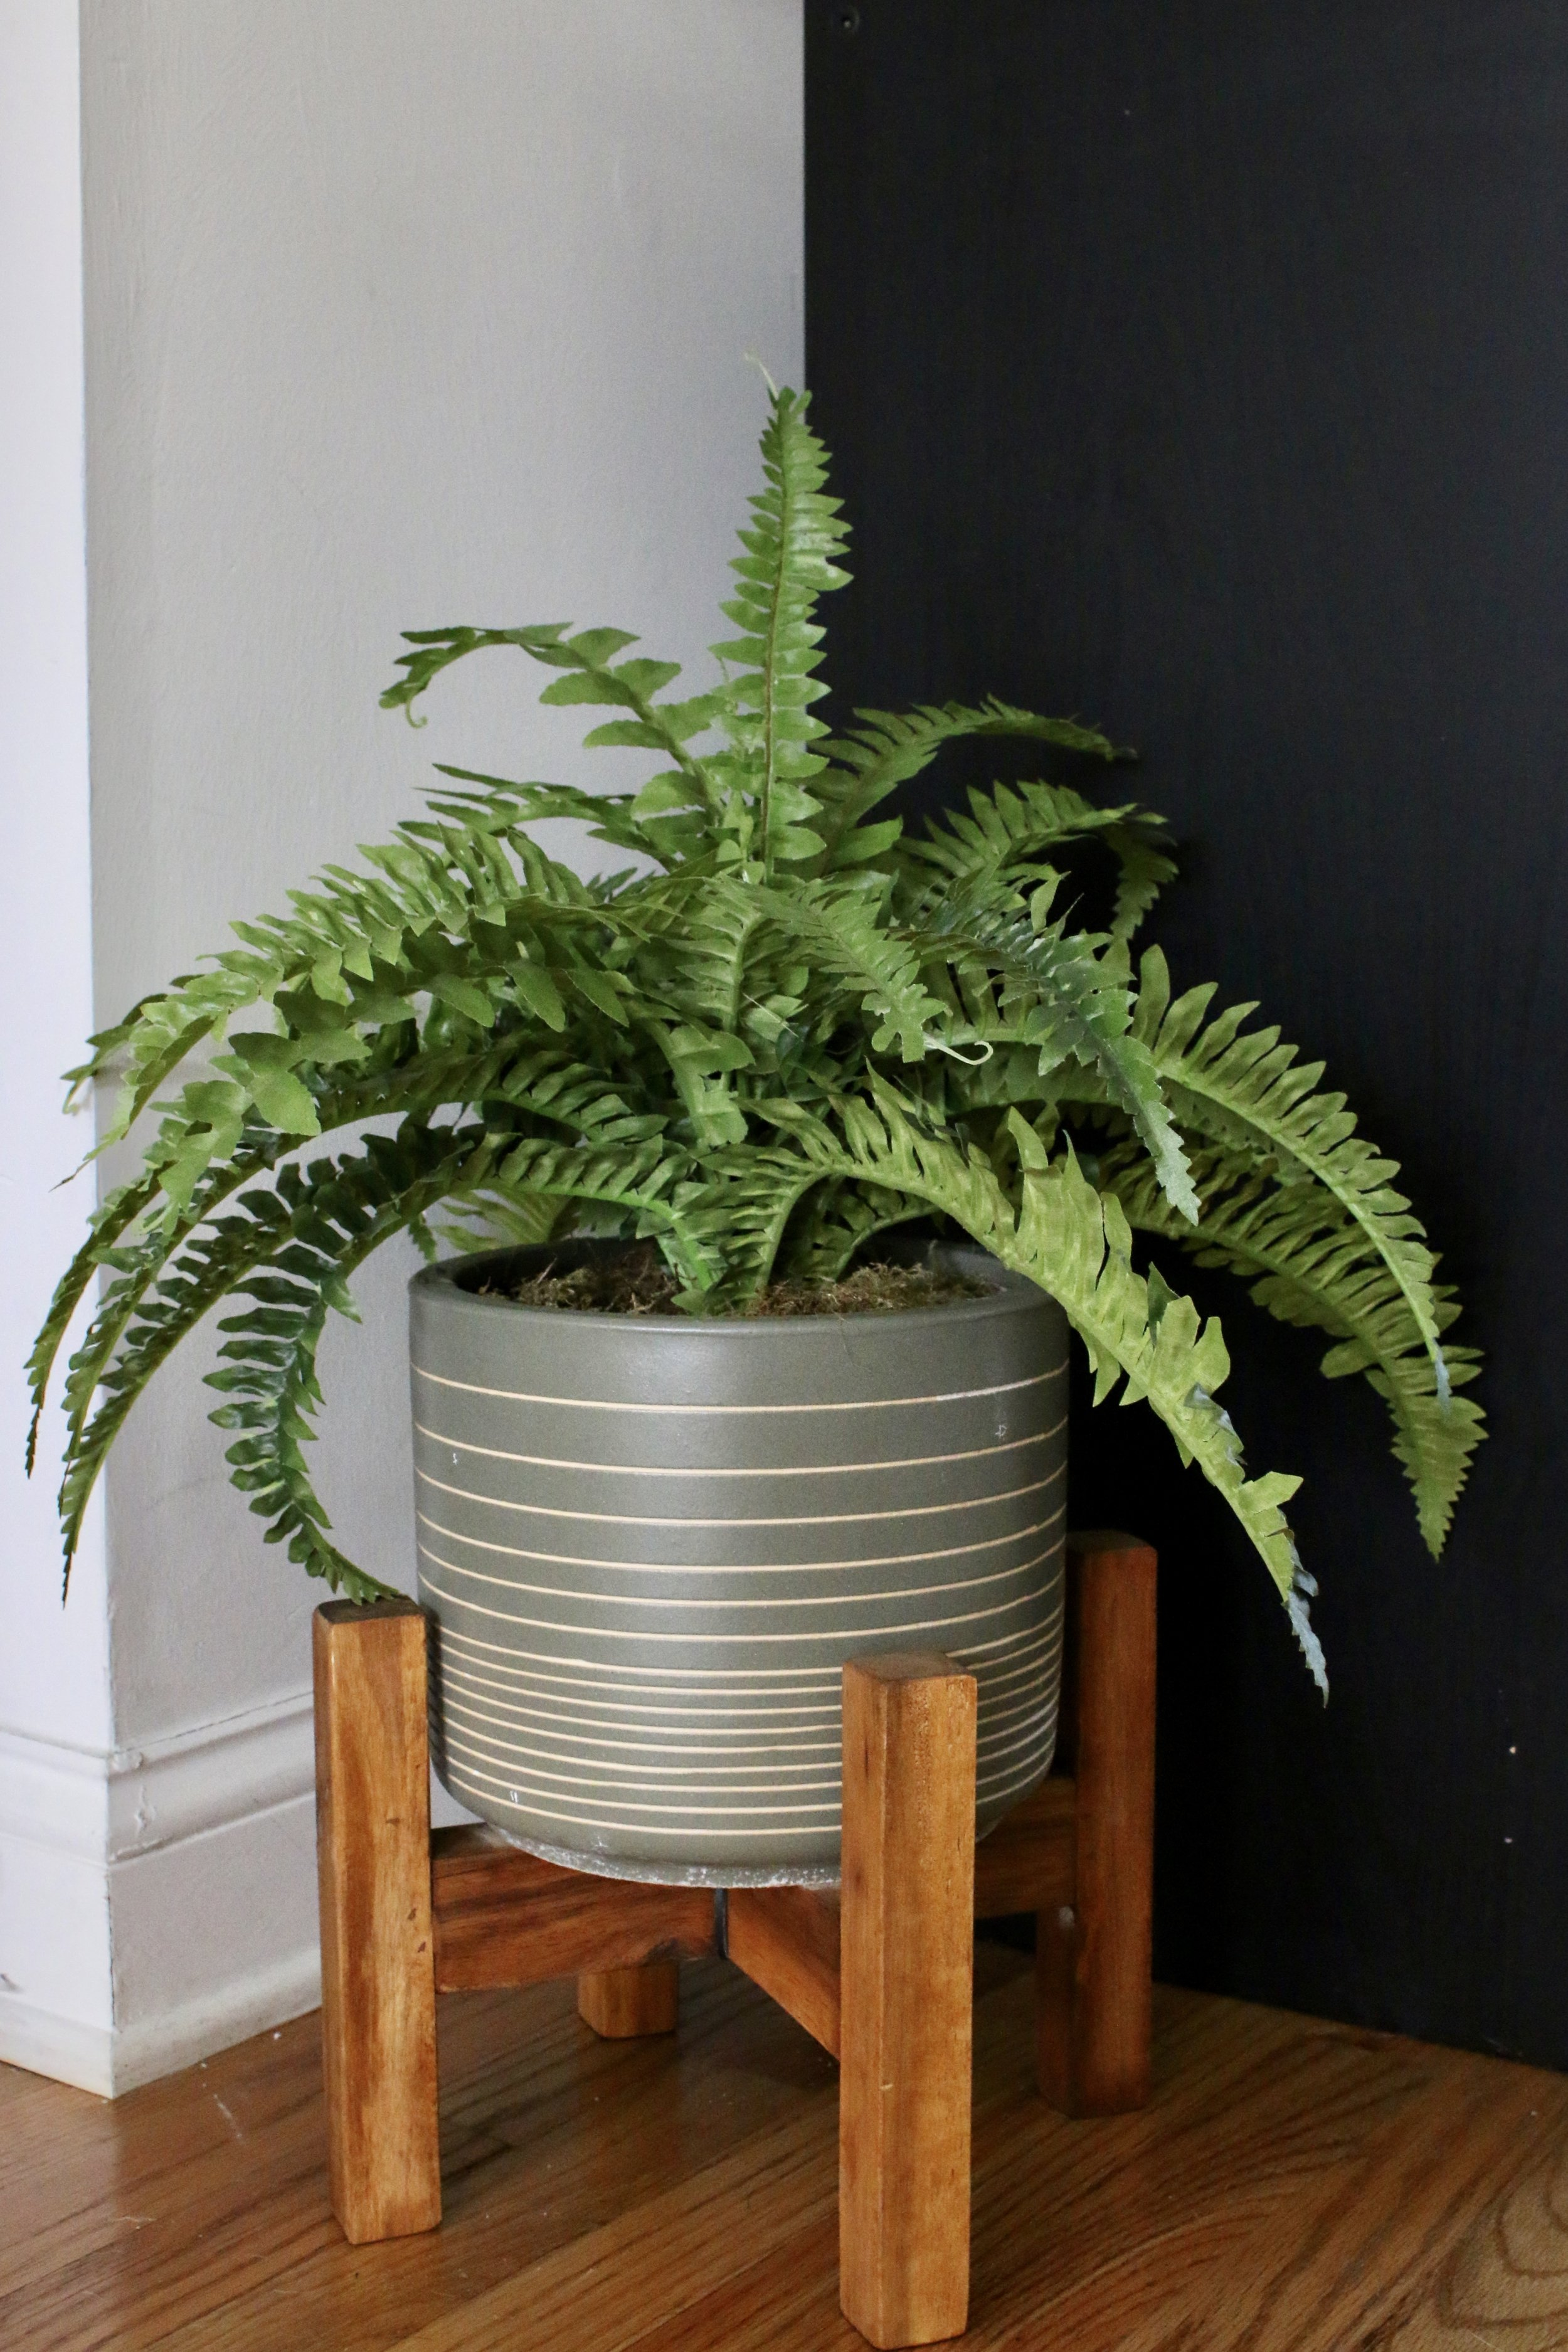 Here's another faux plant from Home Sense